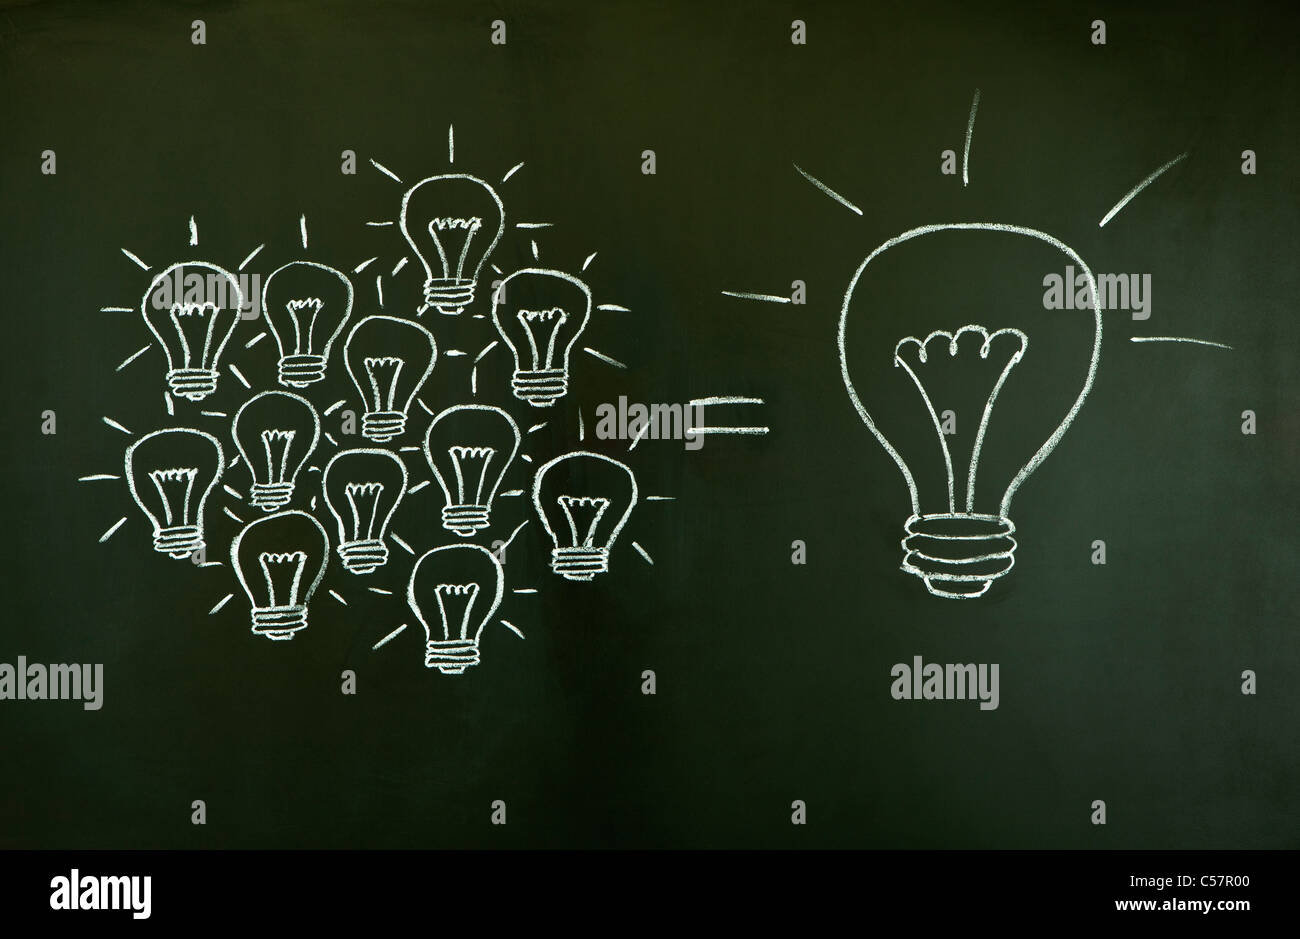 Many small ideas equal a big one, illustrated with chalk drawn light bulbs on a blackboard. Stock Foto